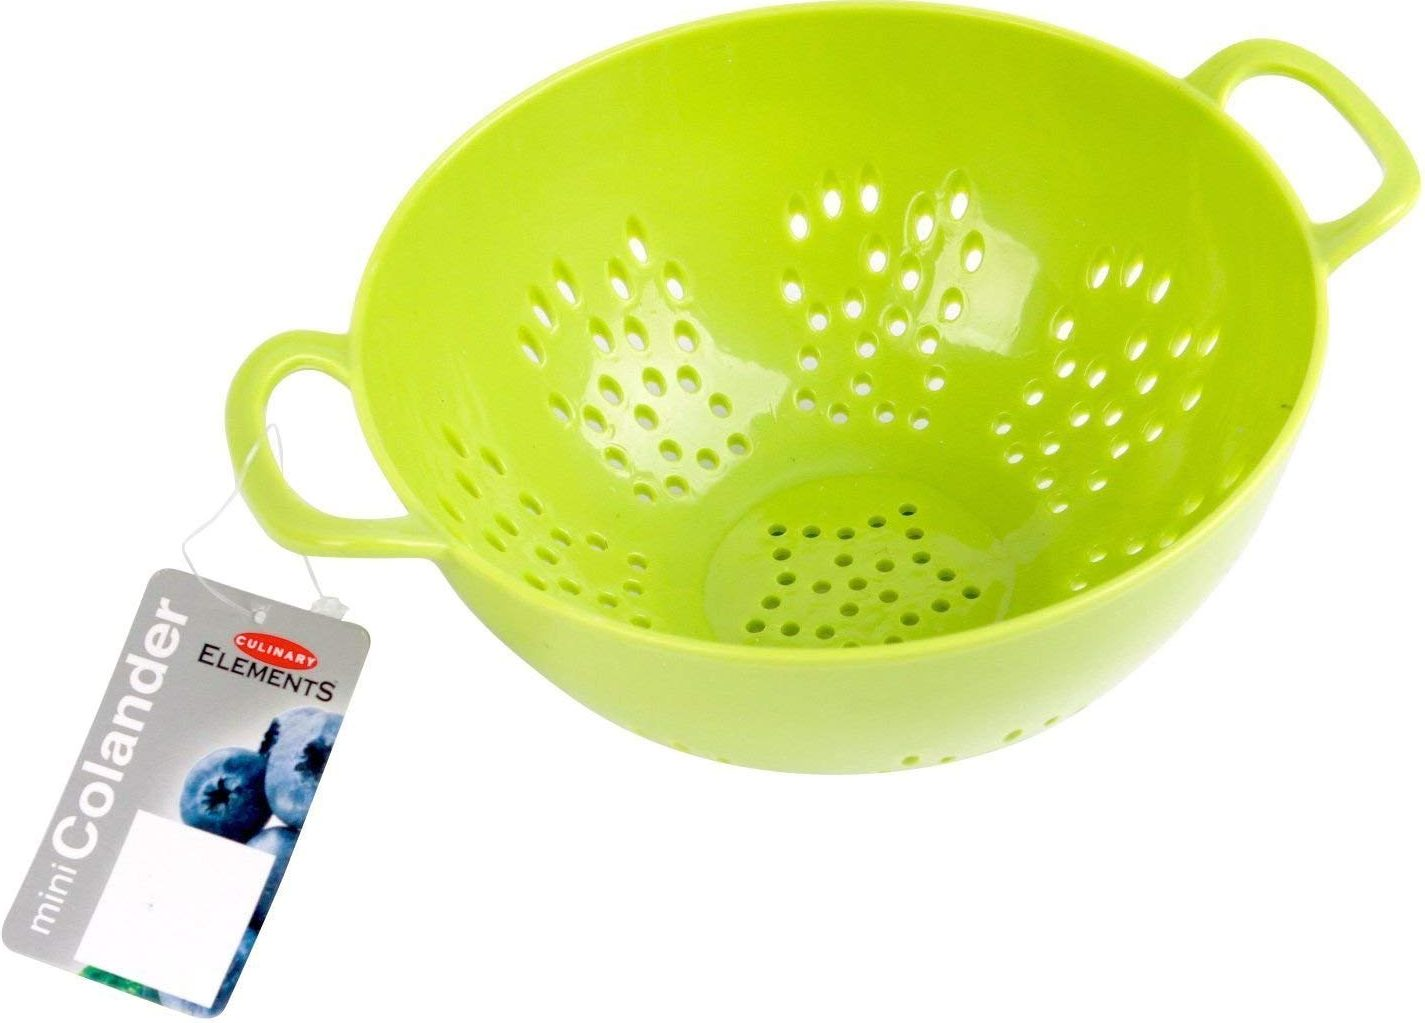 Culinary Elements Colander